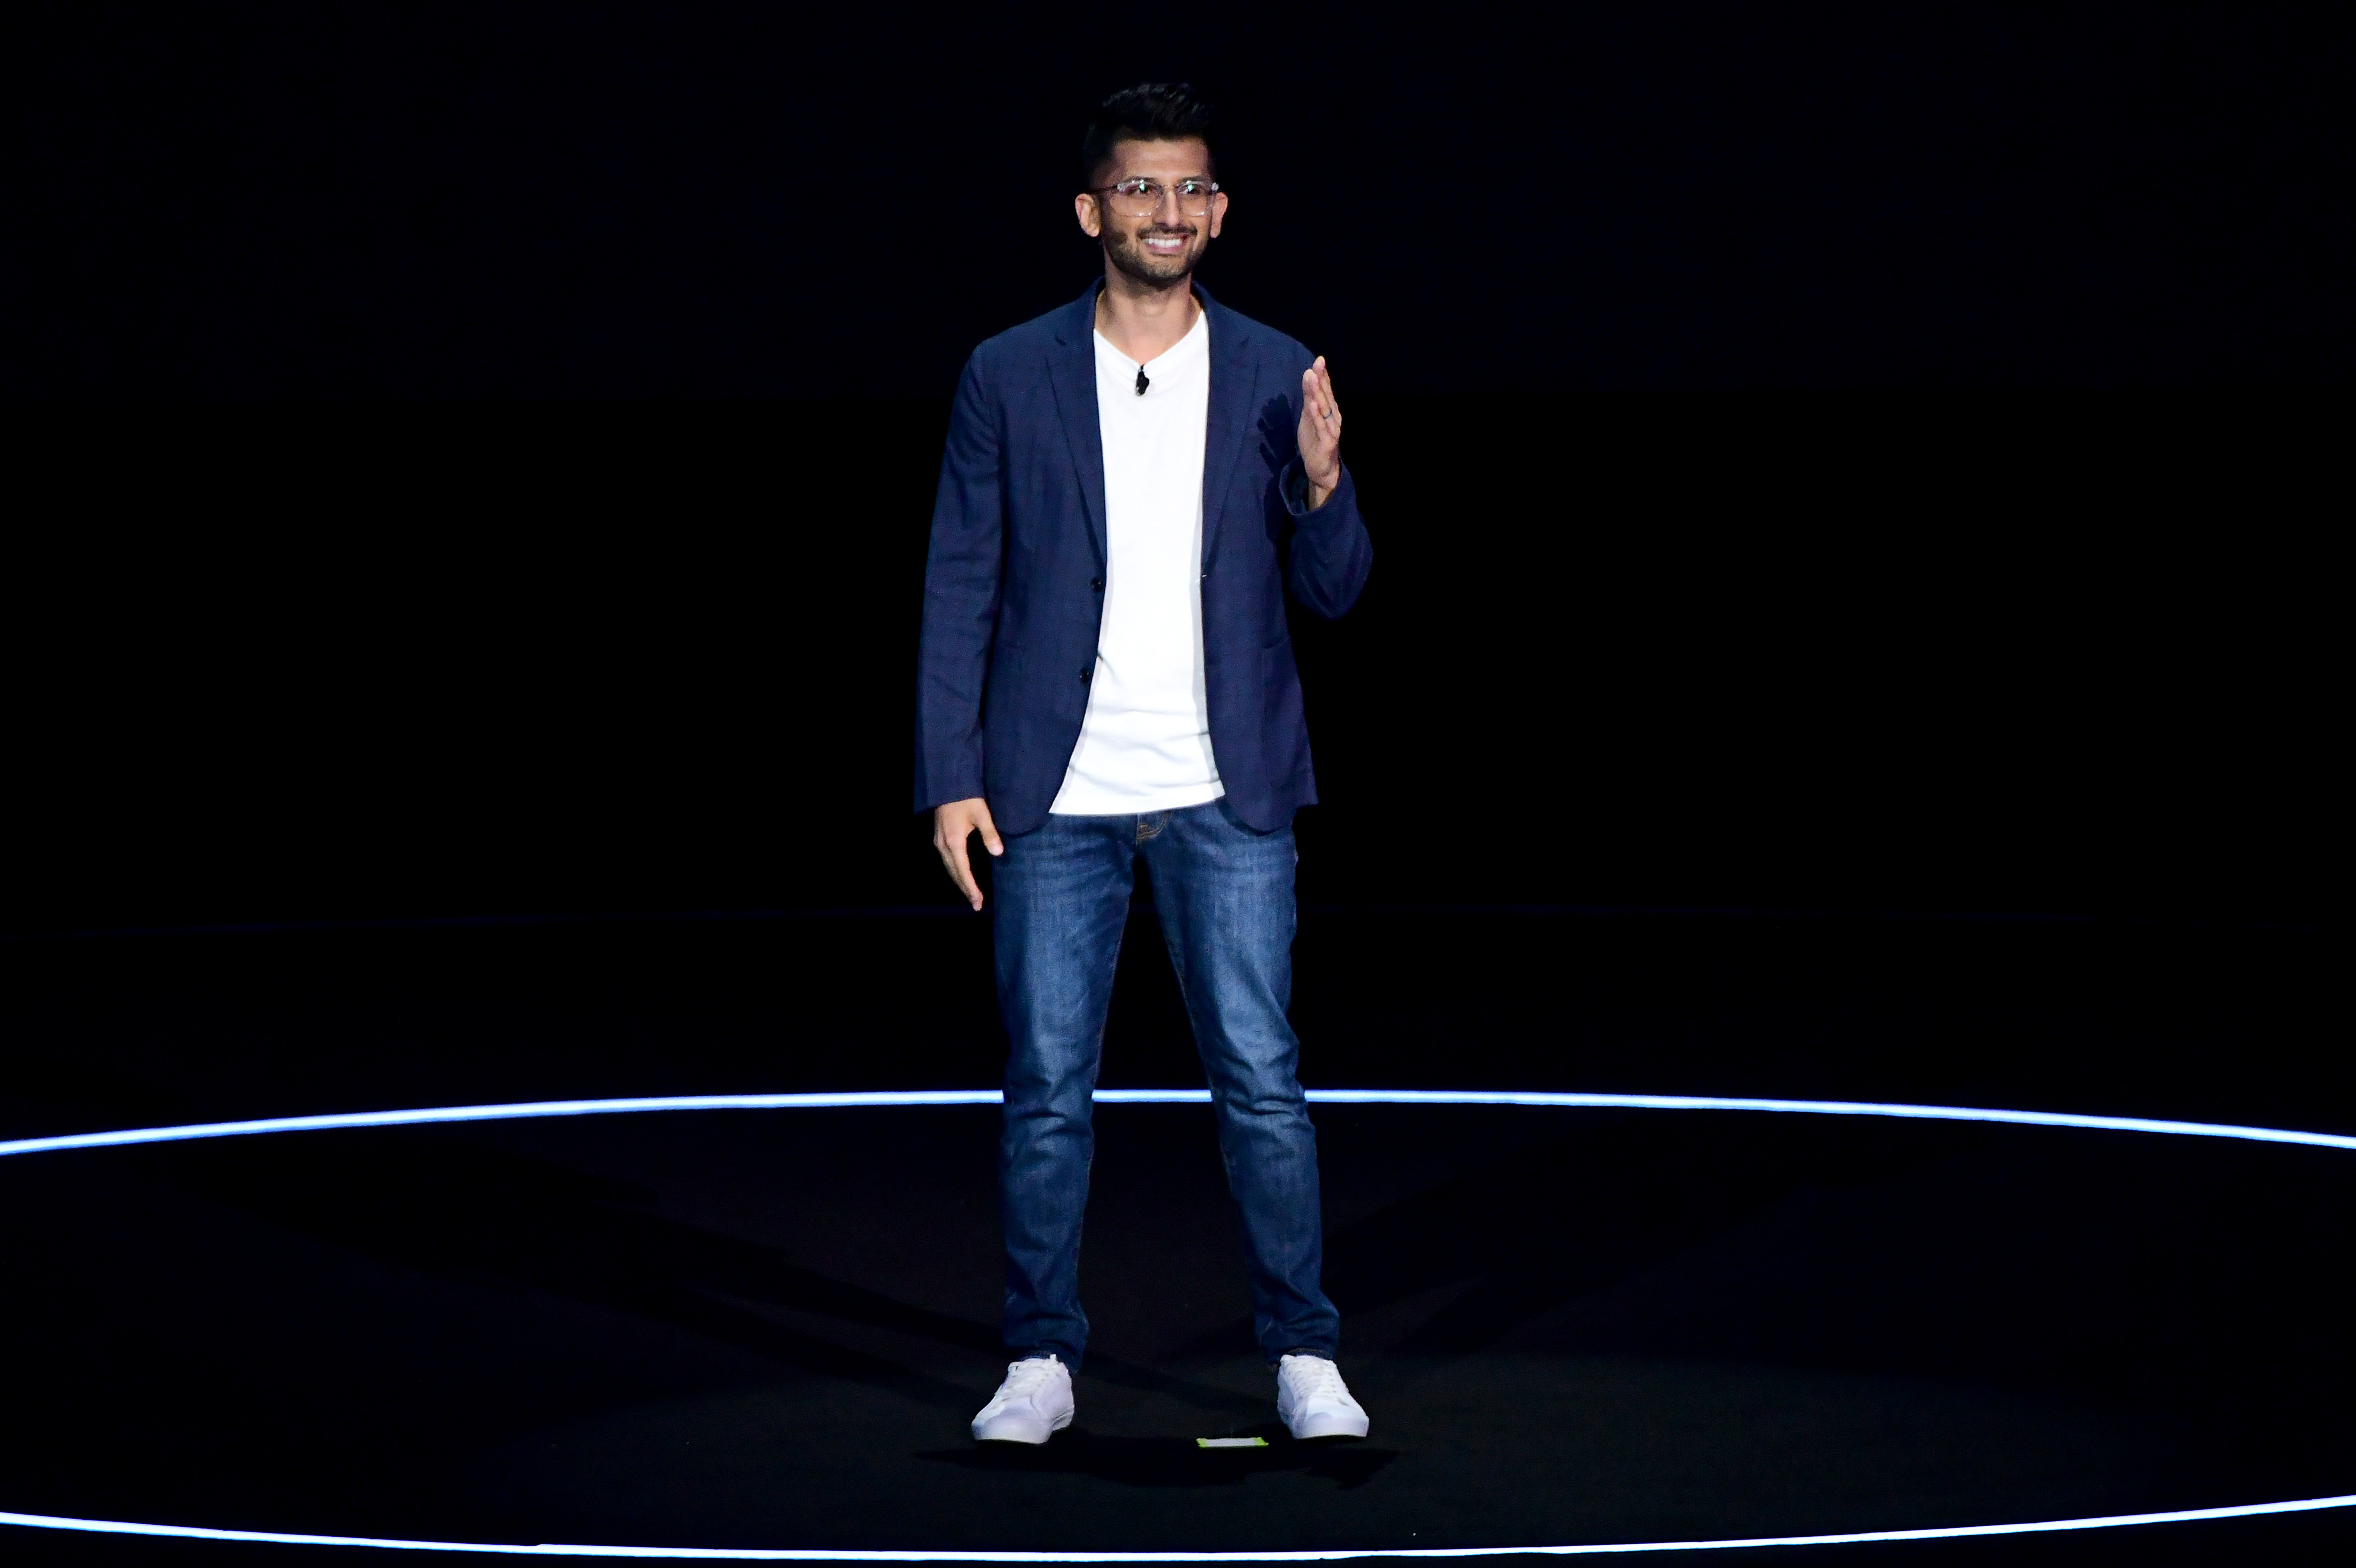 Director of US Product Strategy & Marketing Mobile Computing Hassan Anjum speaks onstage during Samsung Unpacked New York City at Barclays Center at Barclays Center on August 07, 2019 in New York City. (Photo by Bryan Bedder/Getty Images for Samsung)